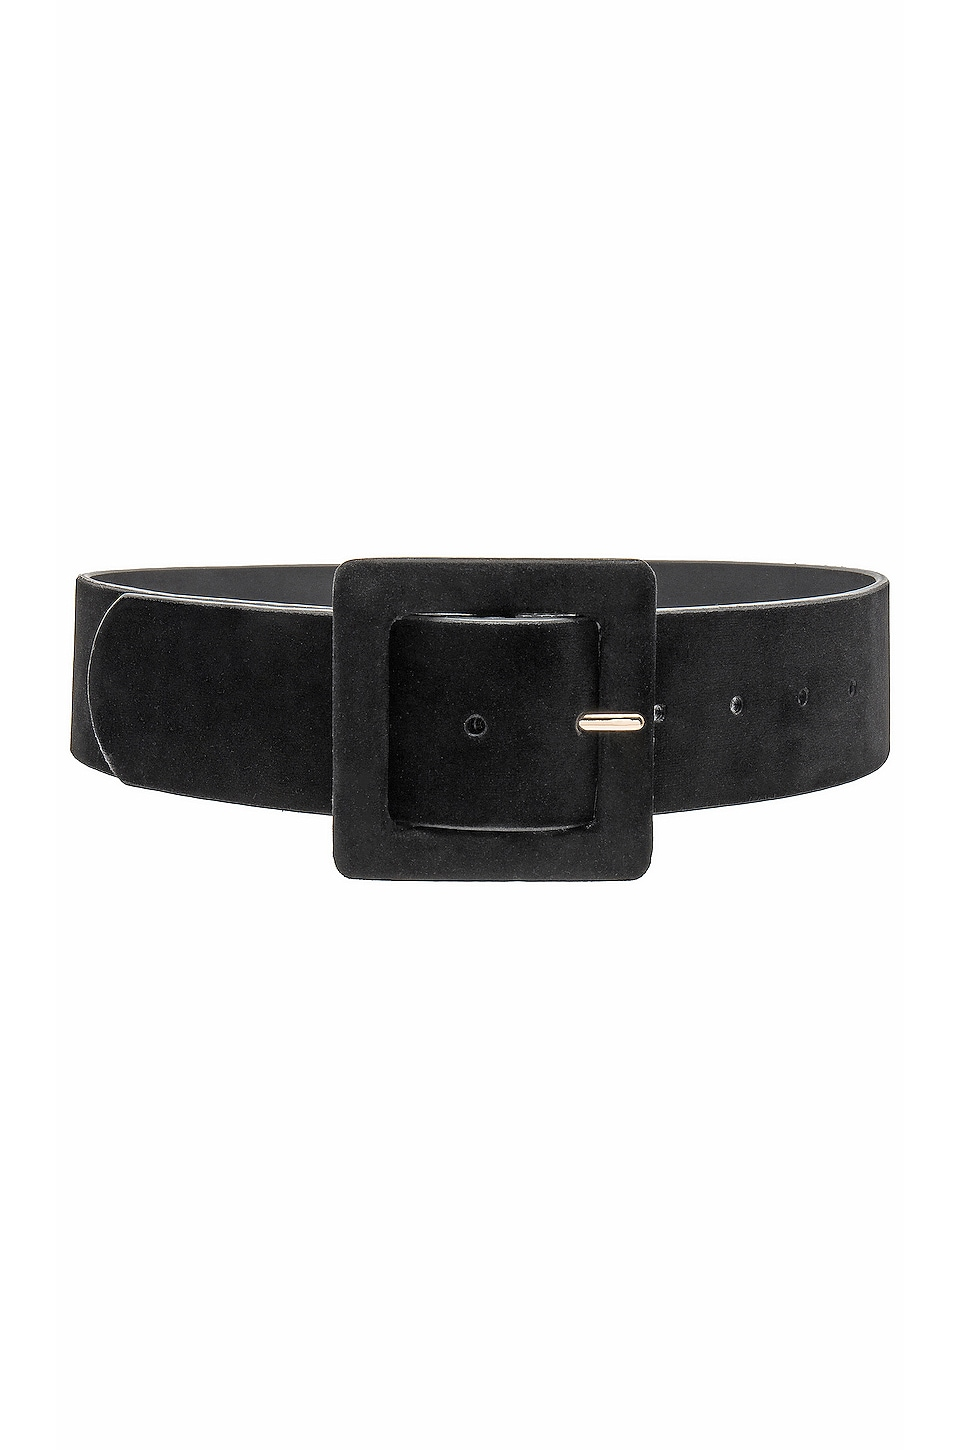 Lovers + Friends Hartman Belt in Black